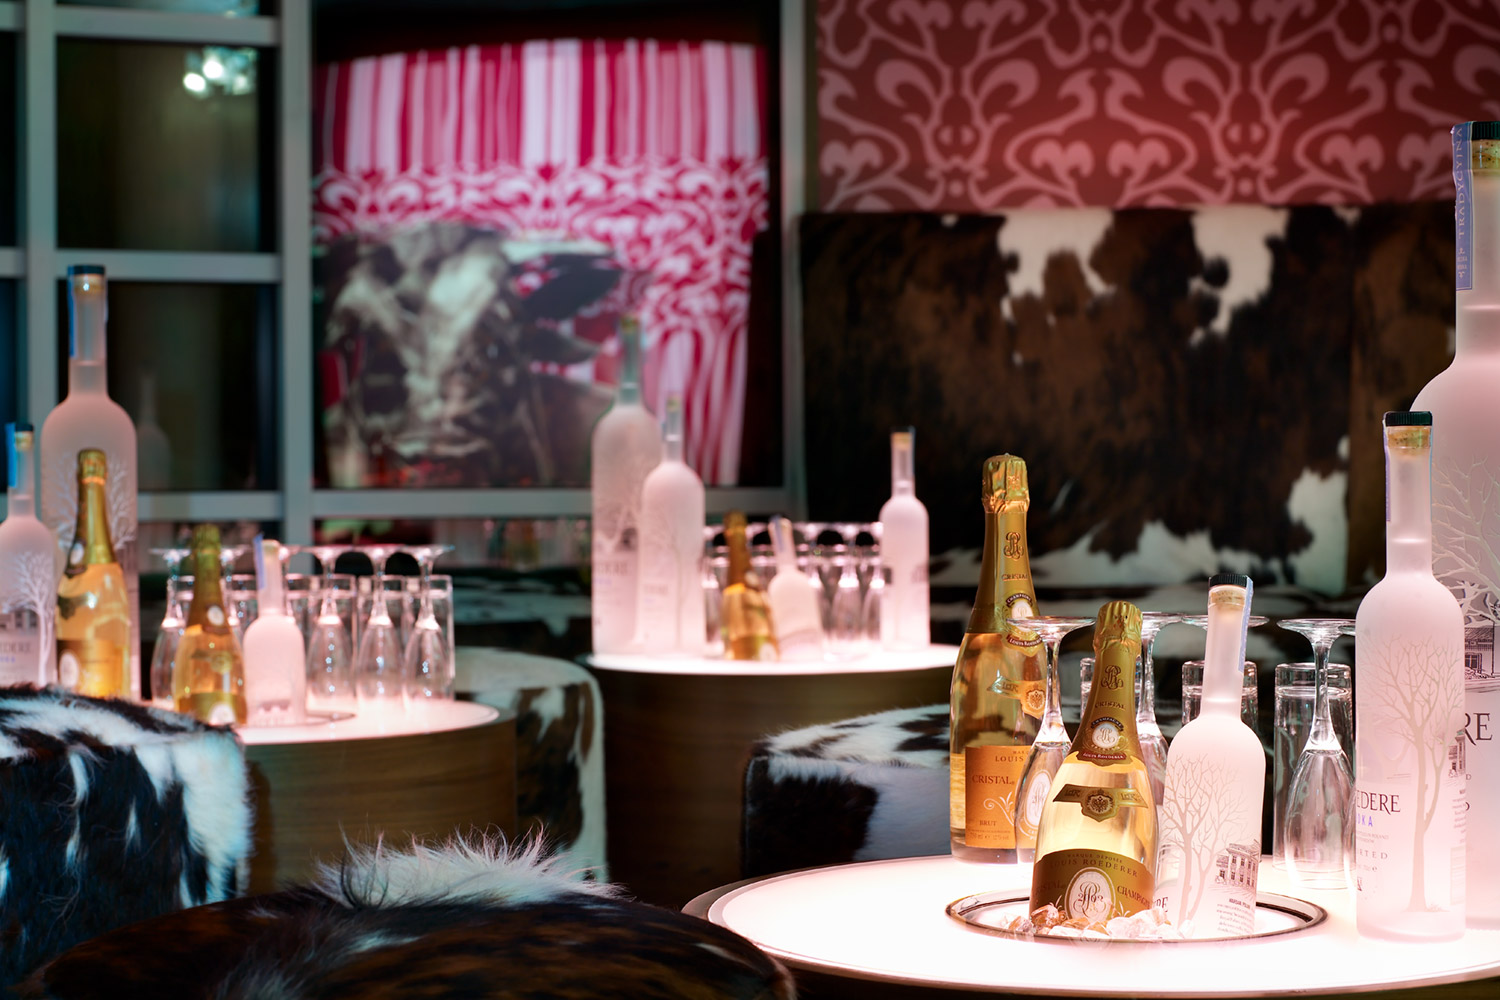 moo-room-club-01-pink-1500x1000